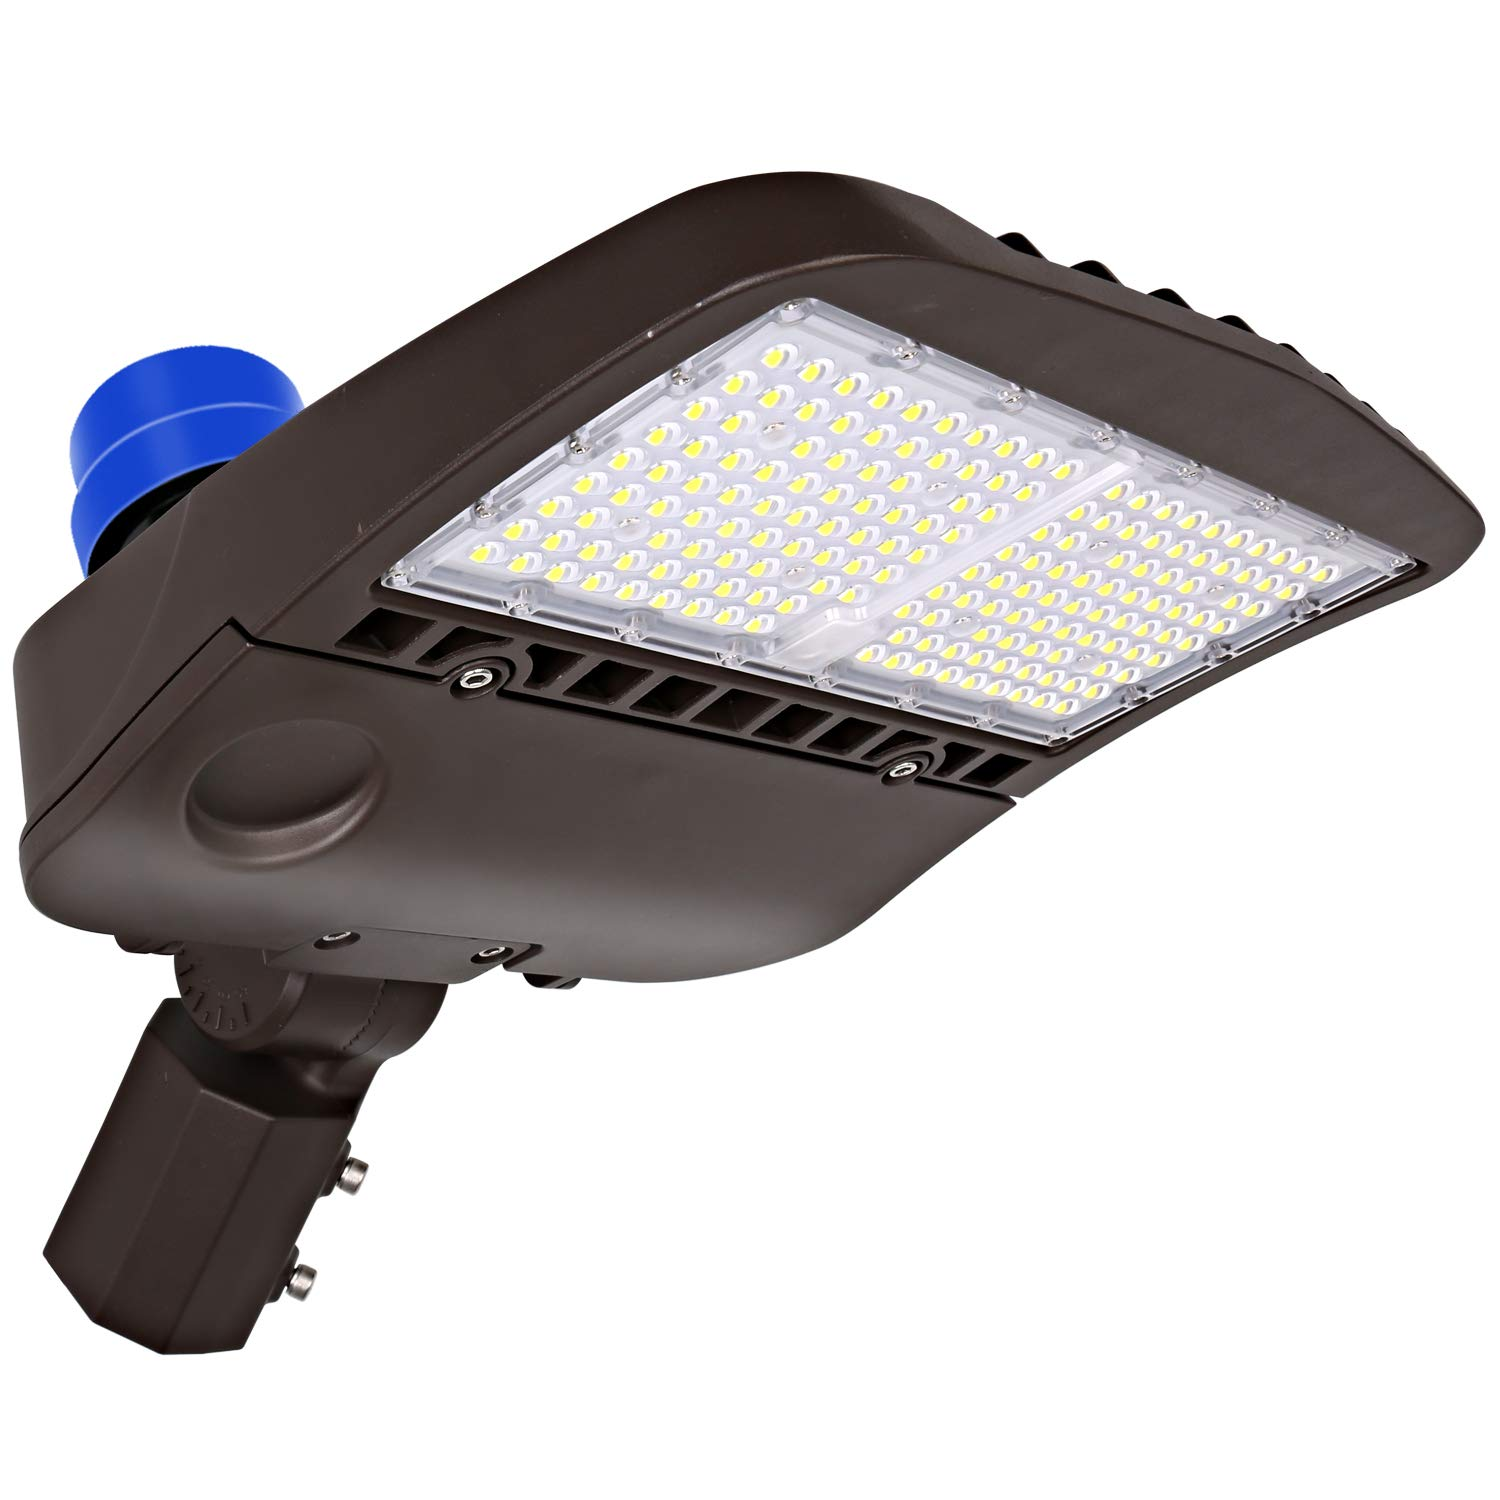 Hykolity 150W LED Parking Lot Light with Photocell,19500lm 5000K Waterproof LED Shoebox Fixture, Outdoor Pole Mount Light for Large Area Lighting [400w Equivalent] Slip Fitter DLC Complied